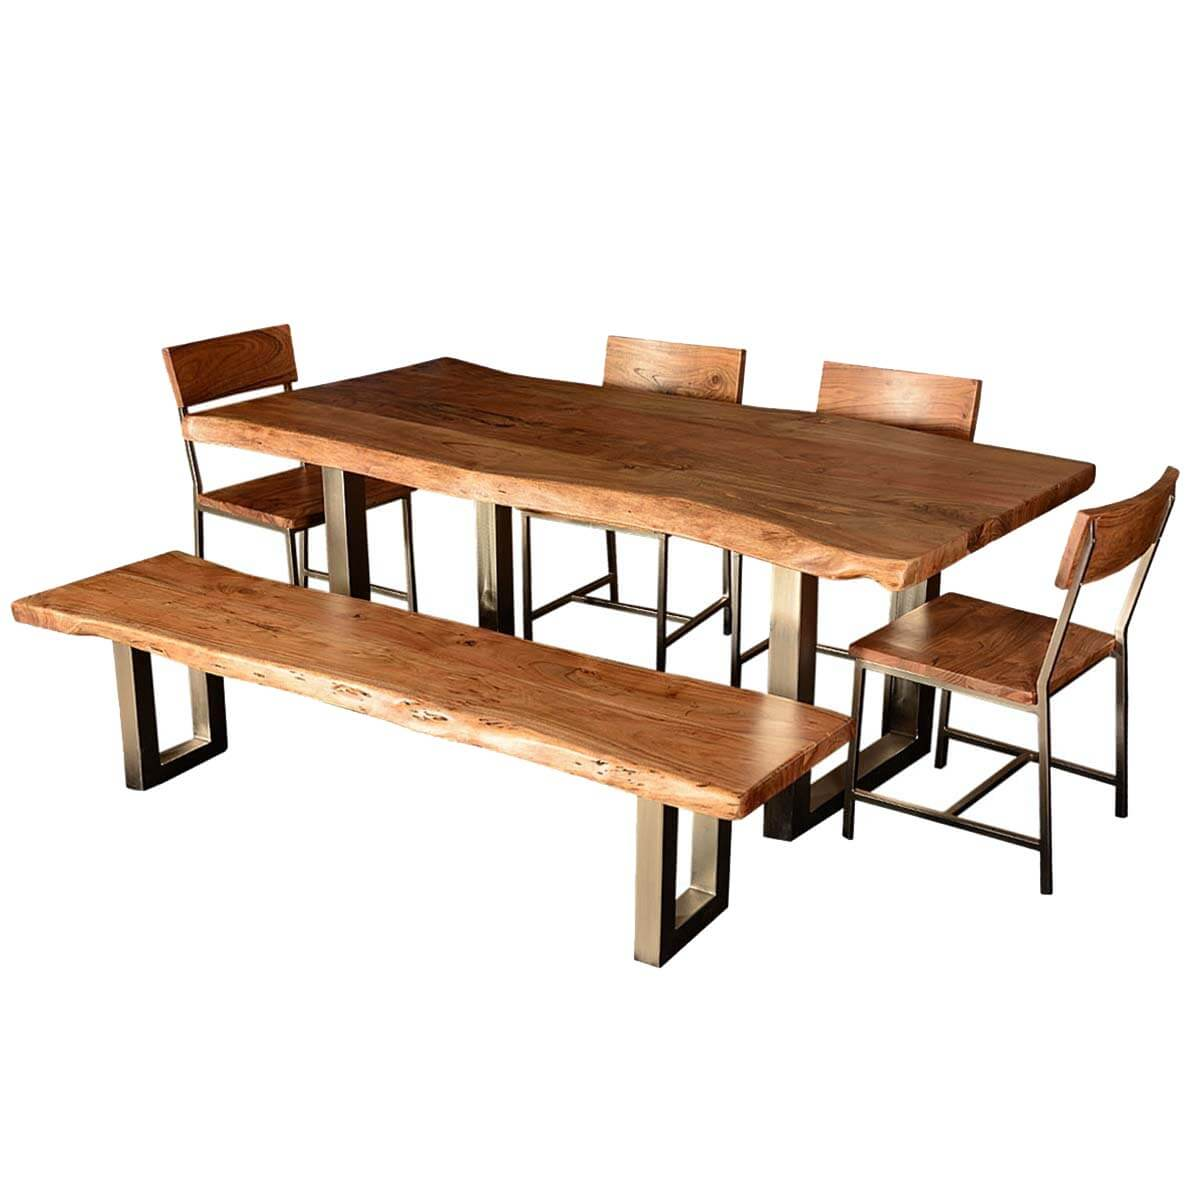 Hankin wood iron base live edge dining table for Hardwood dining table